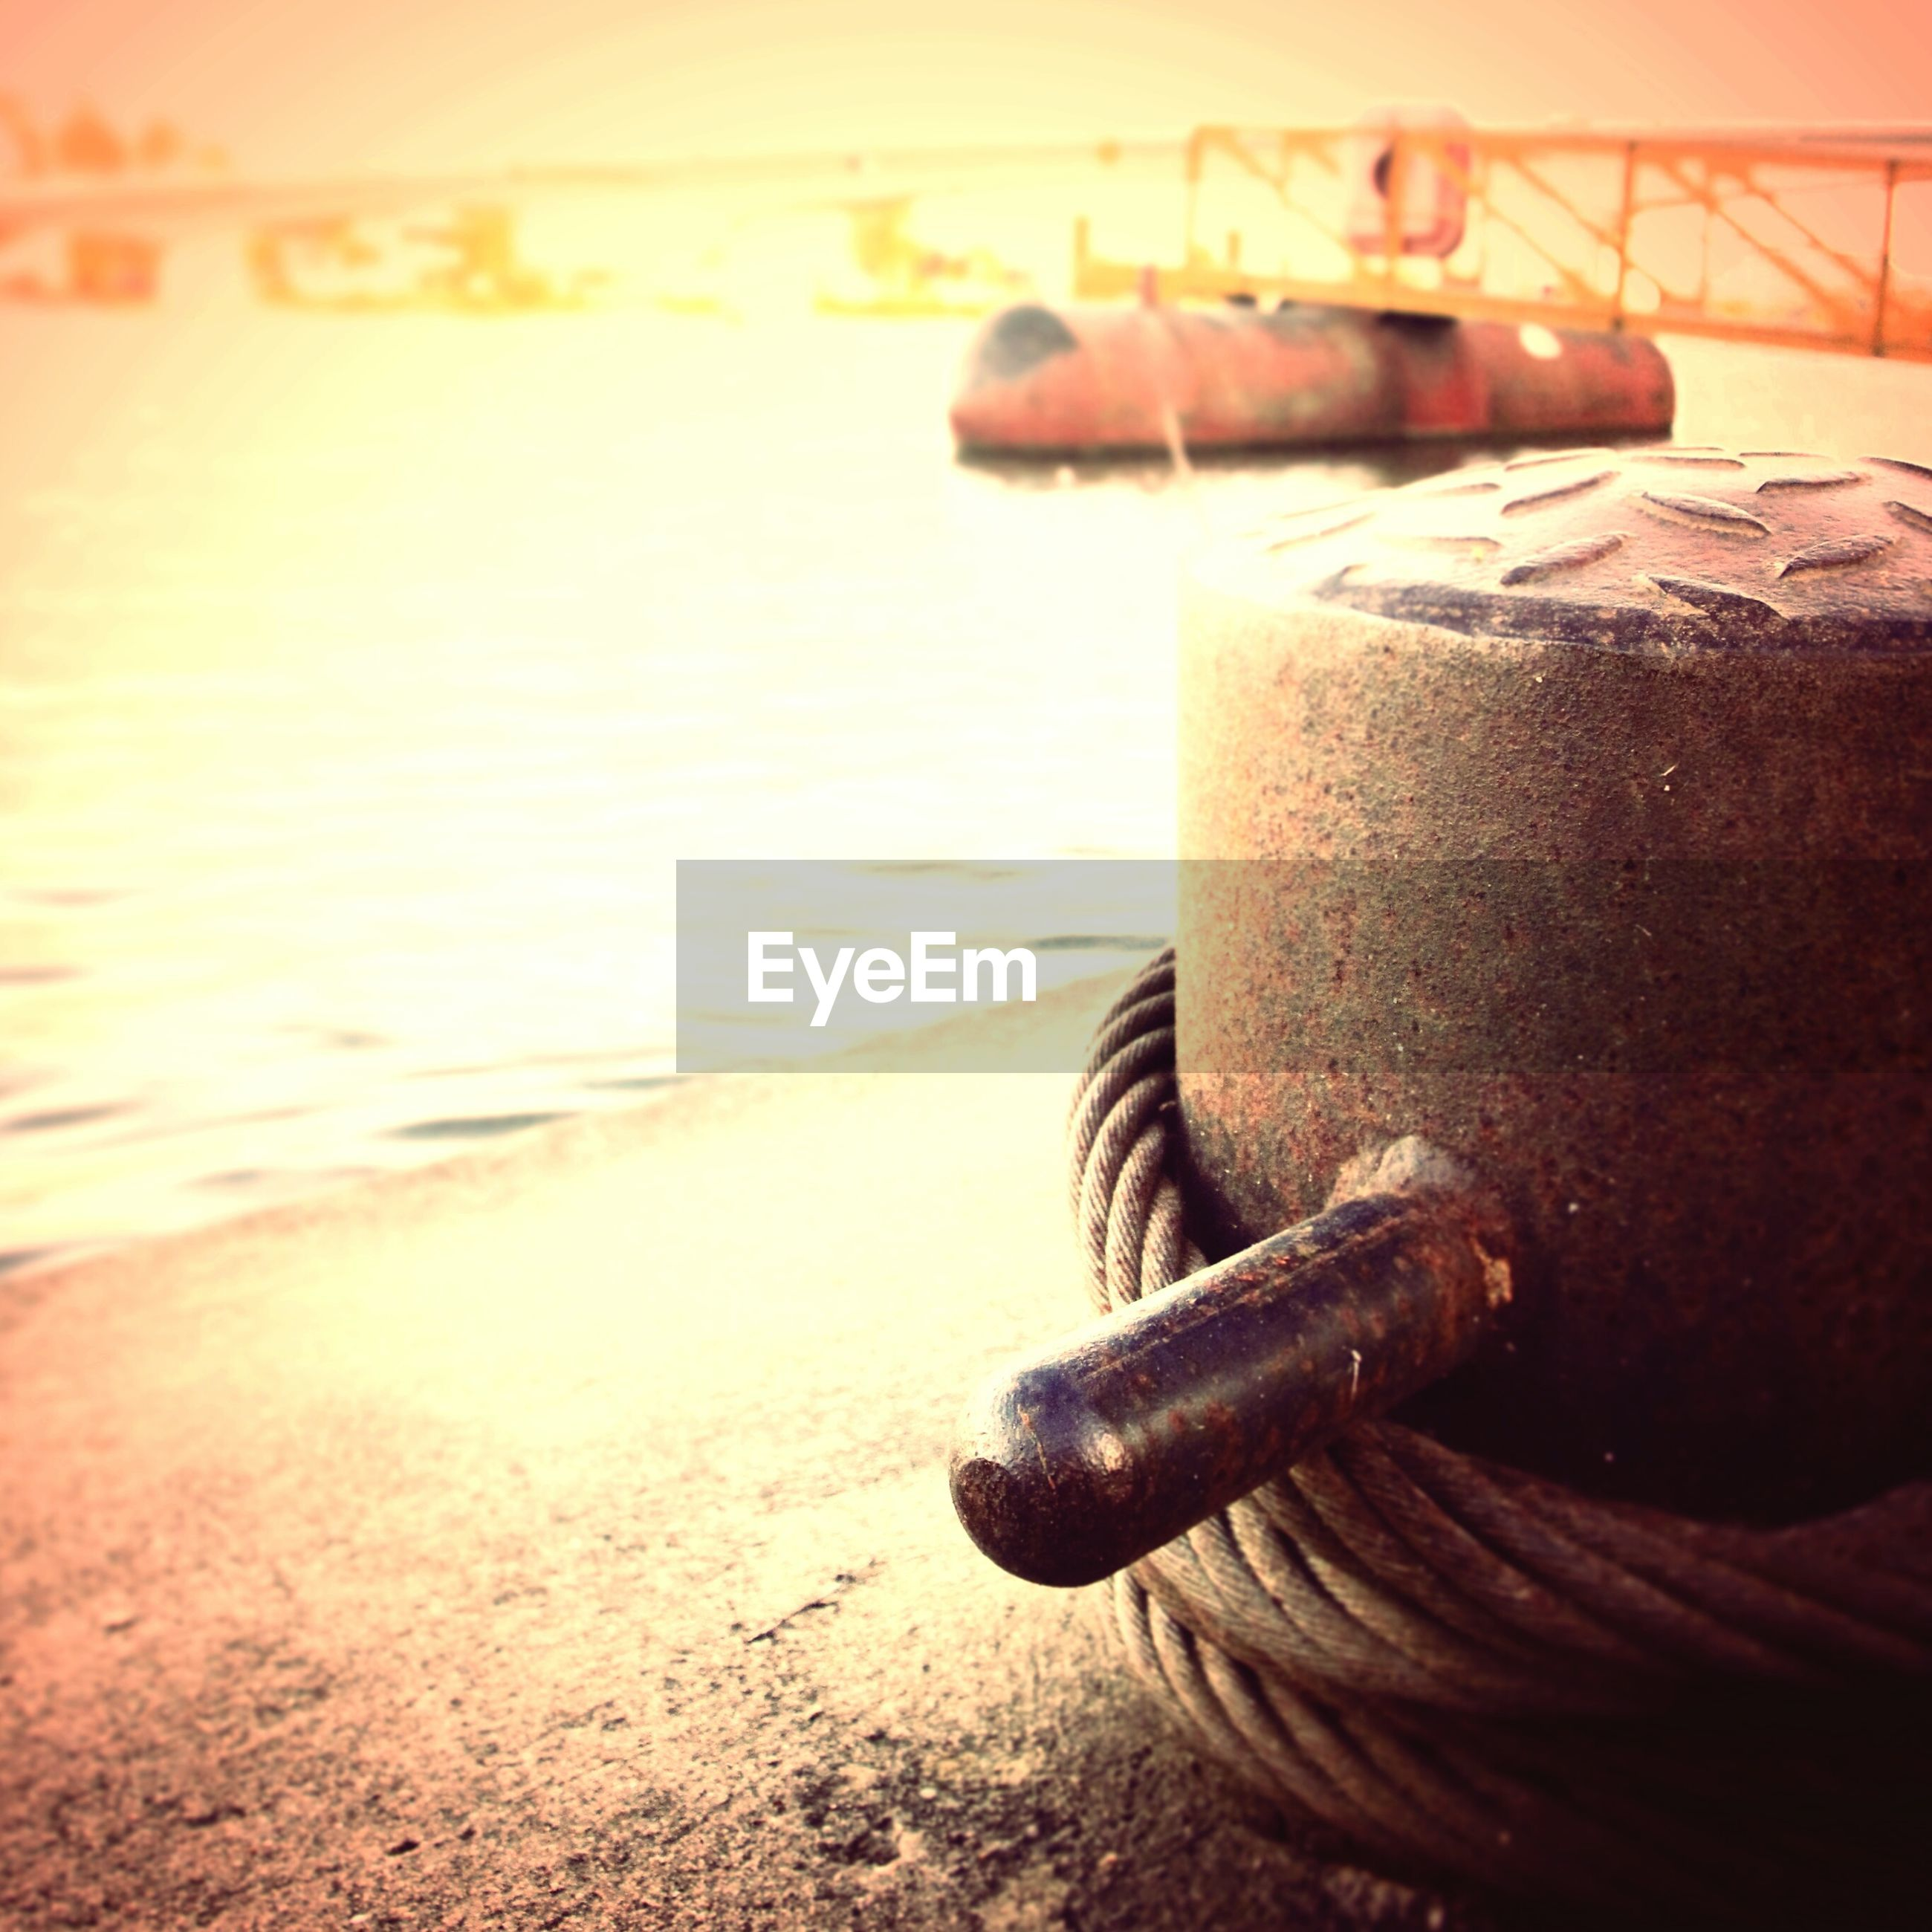 metal, water, close-up, focus on foreground, transportation, nautical vessel, rusty, mode of transport, boat, sea, metallic, no people, sunset, outdoors, part of, old, abandoned, day, moored, single object